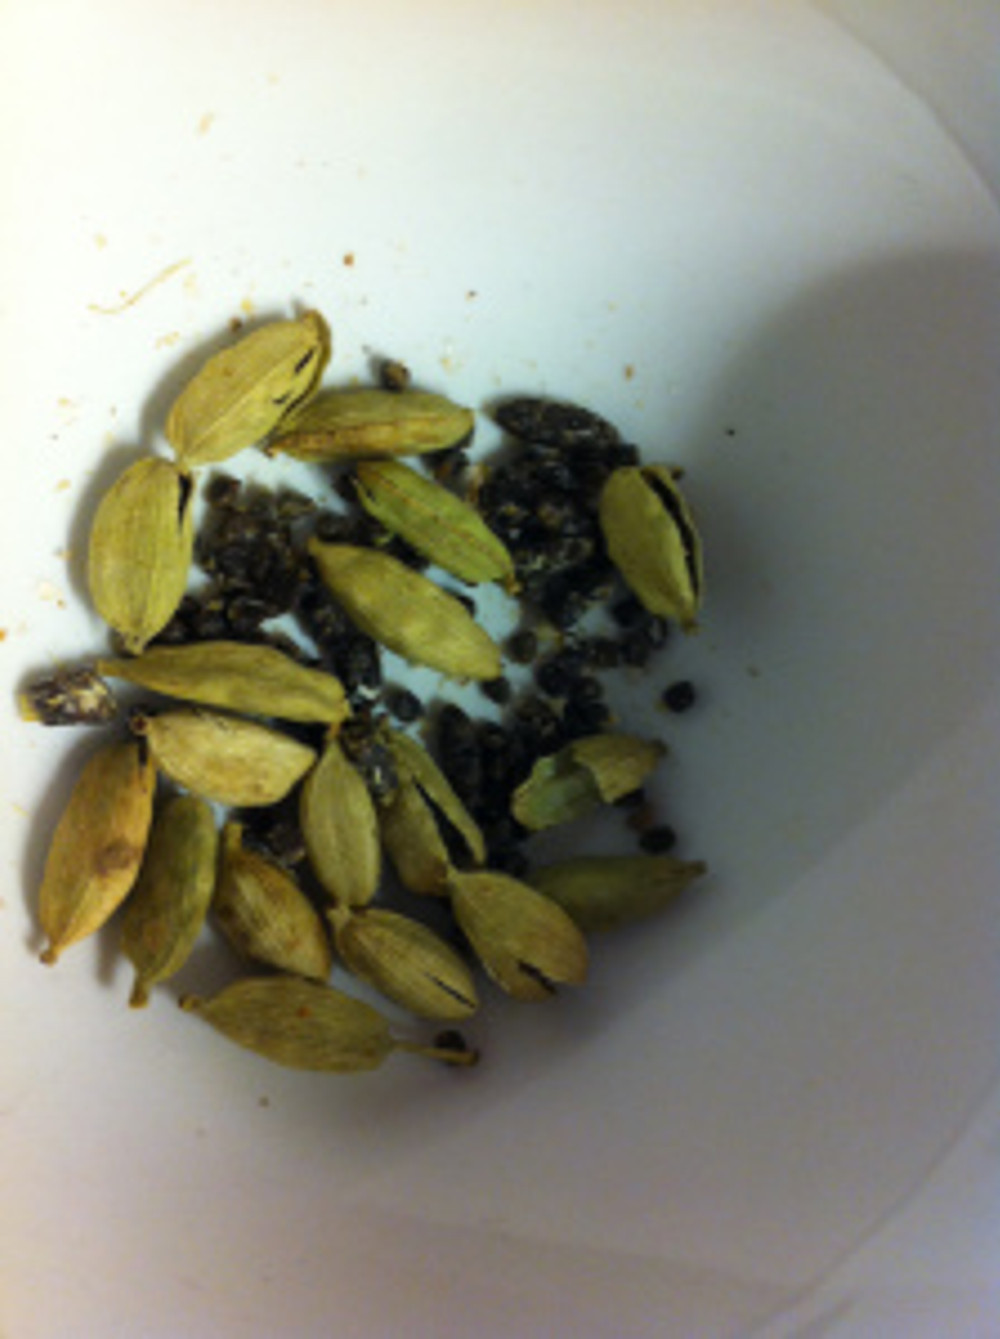 You needed quite a few cardamom pods to get a teaspoonful out of it!